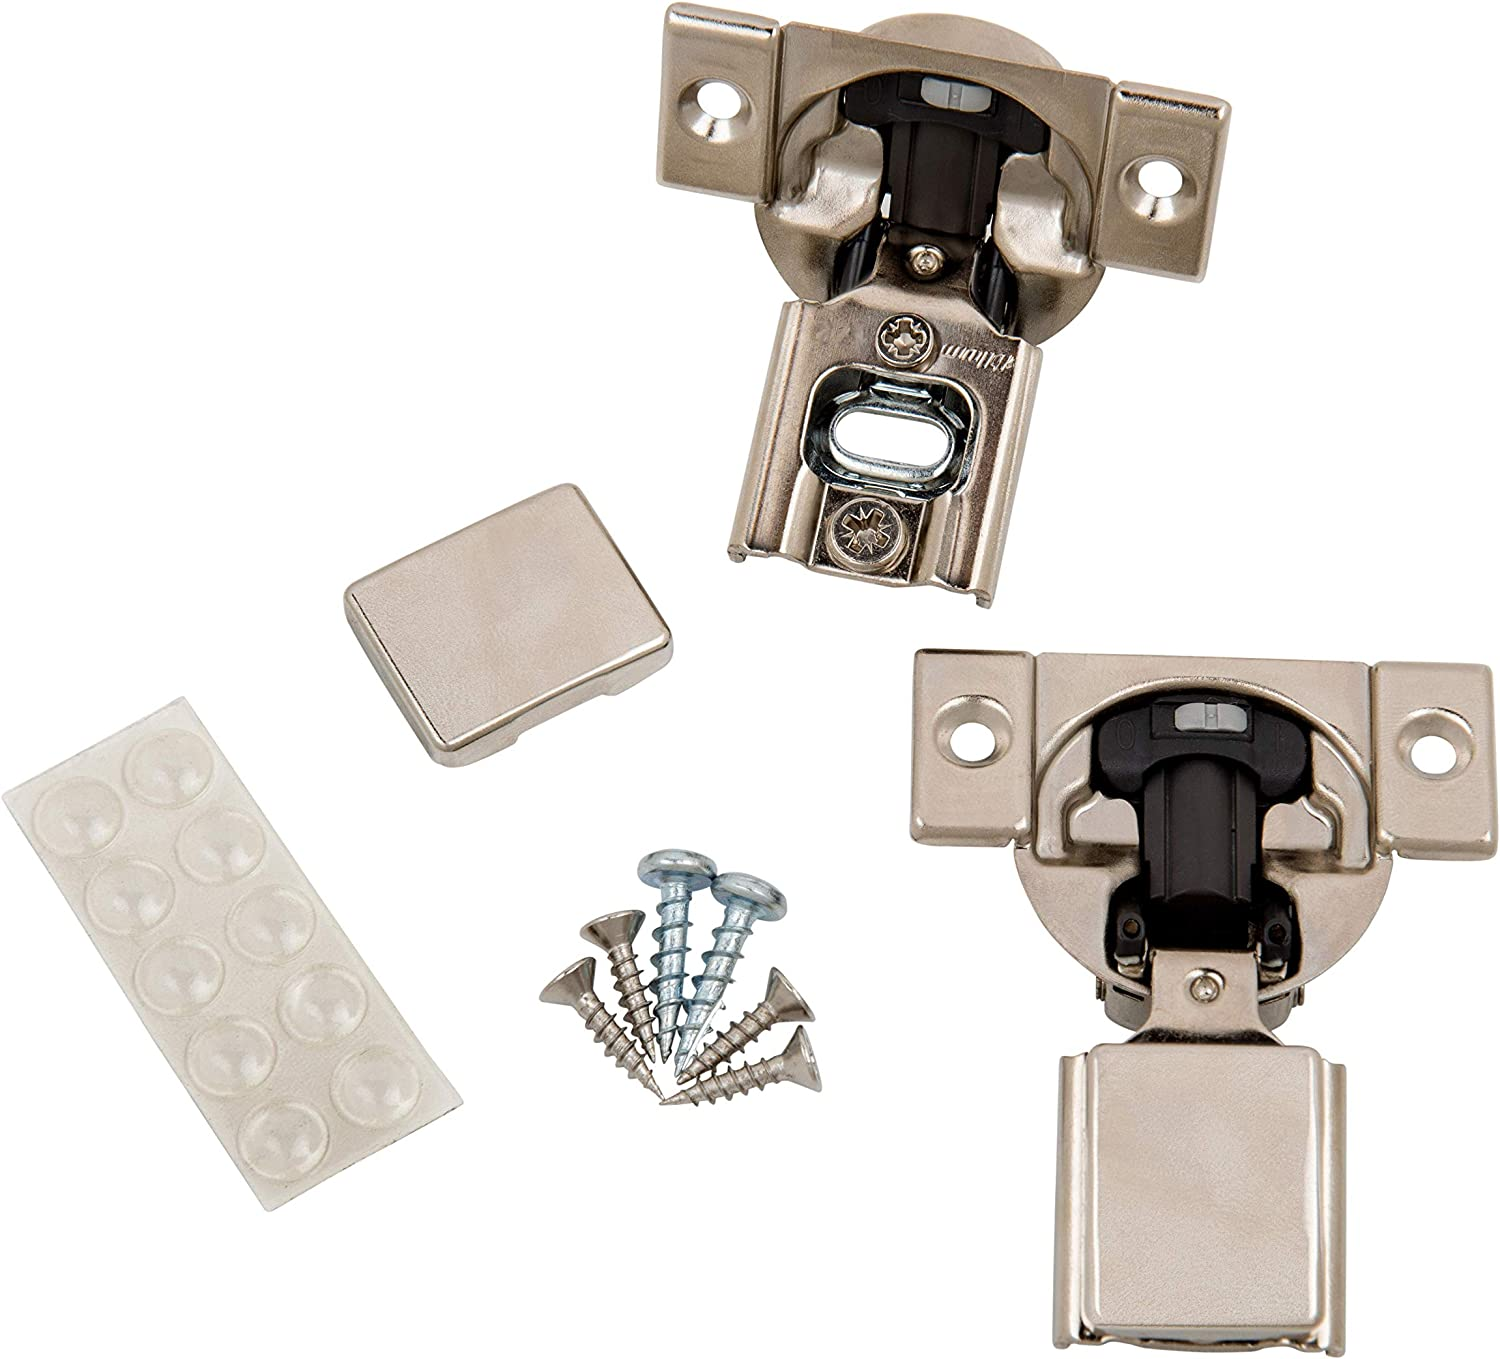 """Blum (20 Pack) 3/8"""" Overlay Soft Close Hinge 38N355B.06 105° Blumotion with Screws, Cover Caps, ProCabinetBumpers Bumpers"""